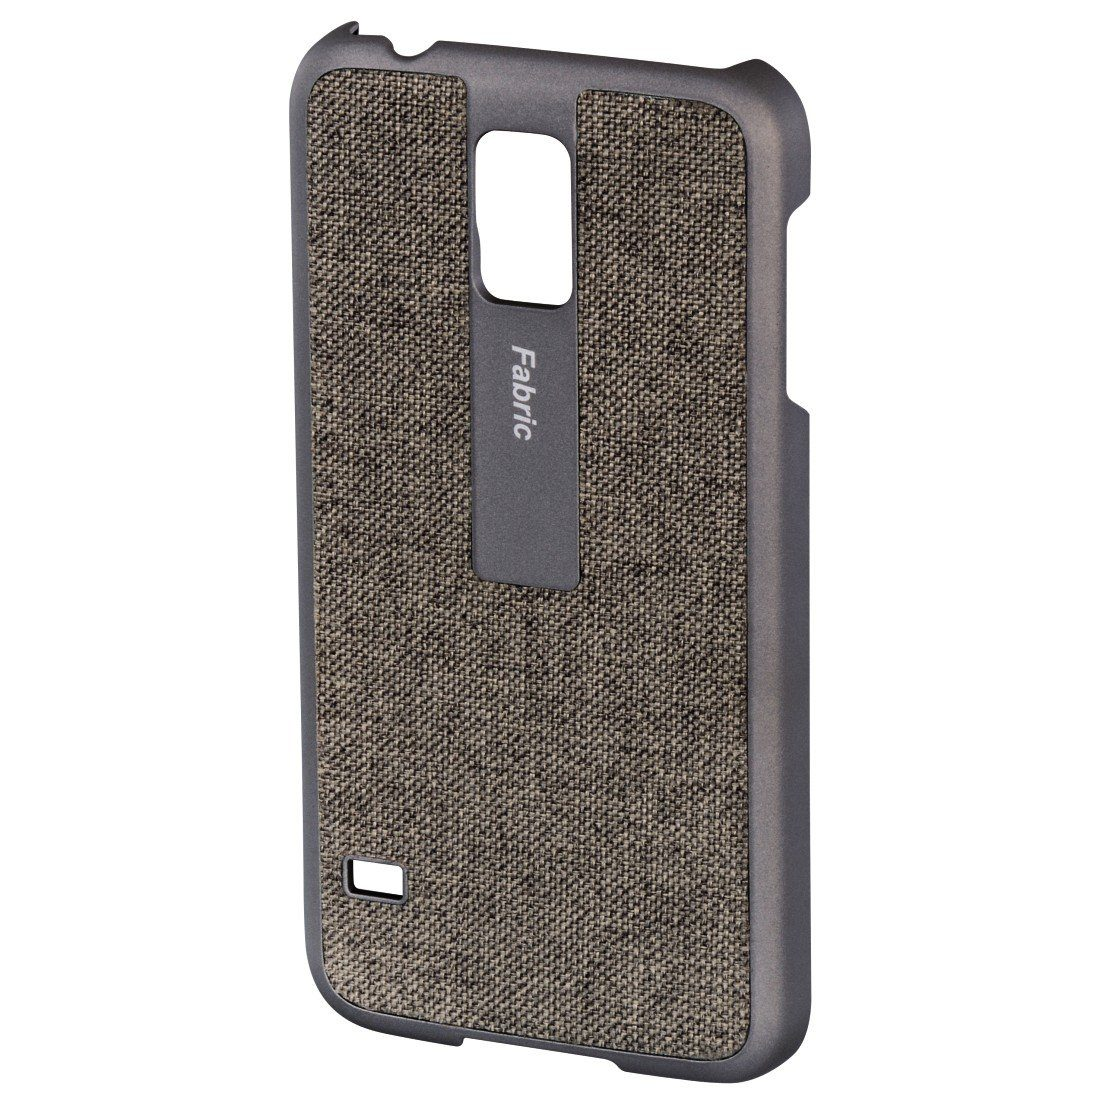 Hama Handy-Cover Fabric für Samsung Galaxy S5 (Neo), Beige/Gold